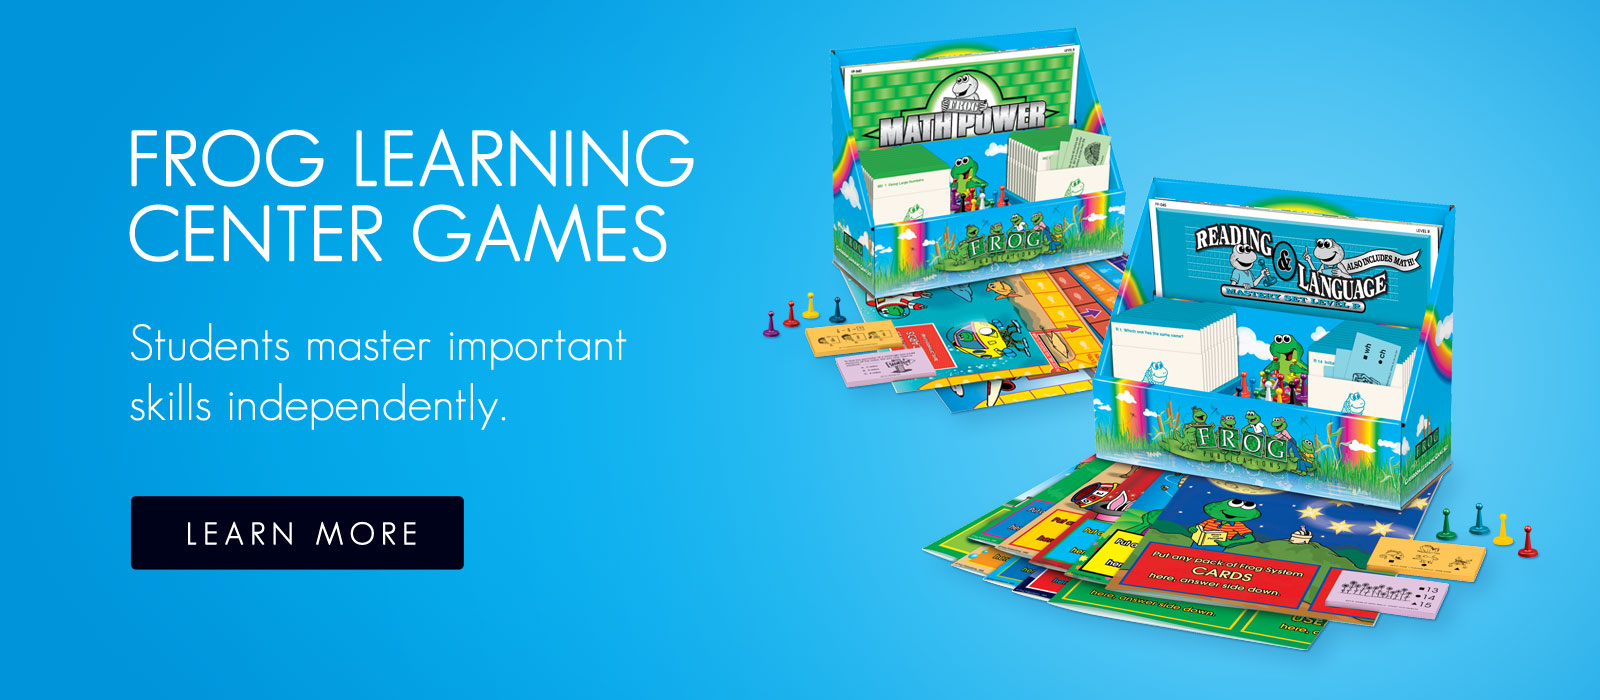 Frog Learning Center Games